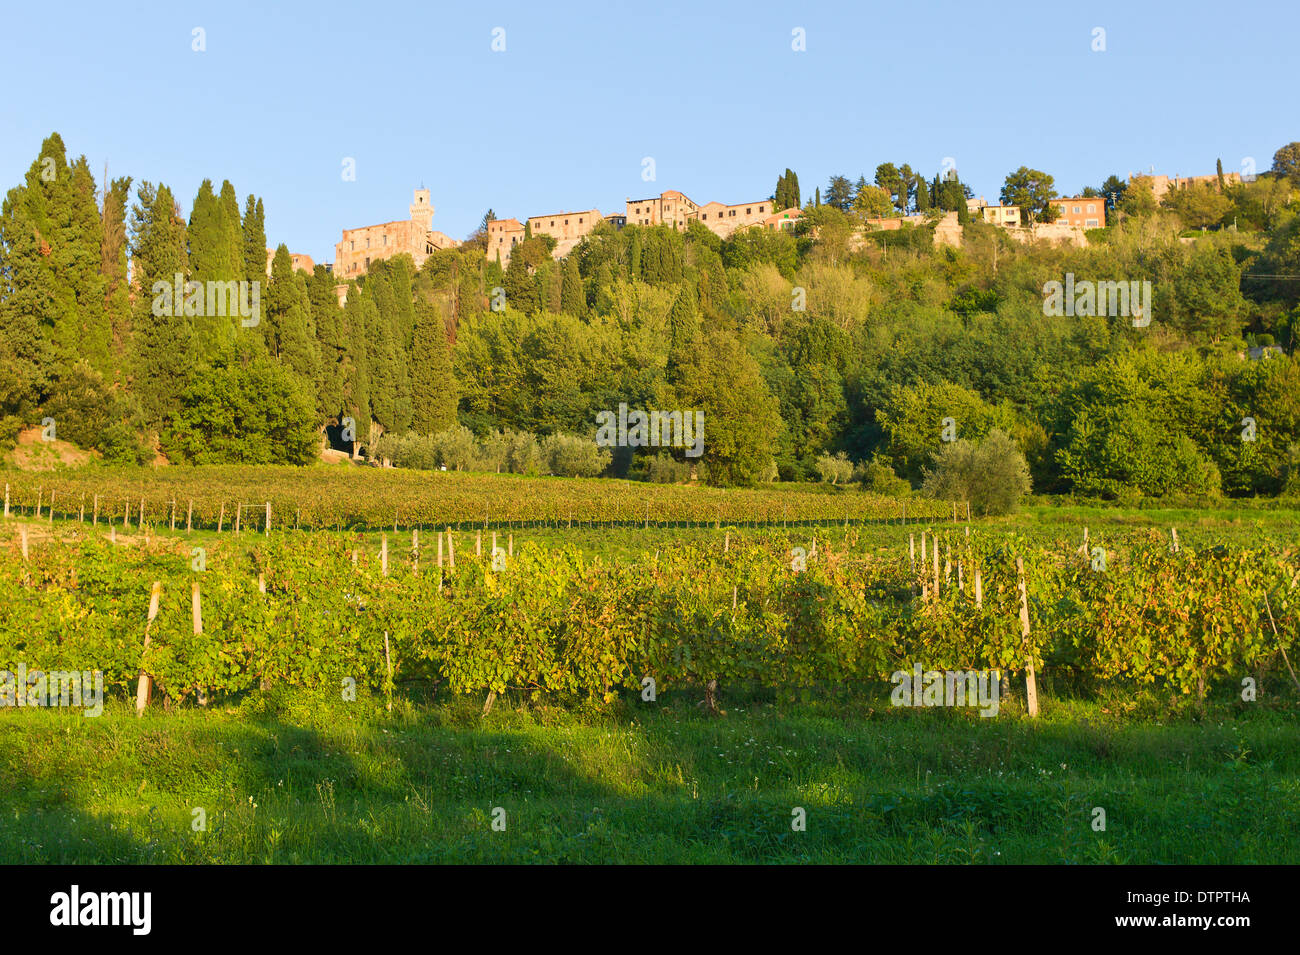 Vineyards below the Tuscan hill town of Montepulciano, Tuscany, Italy - Stock Image